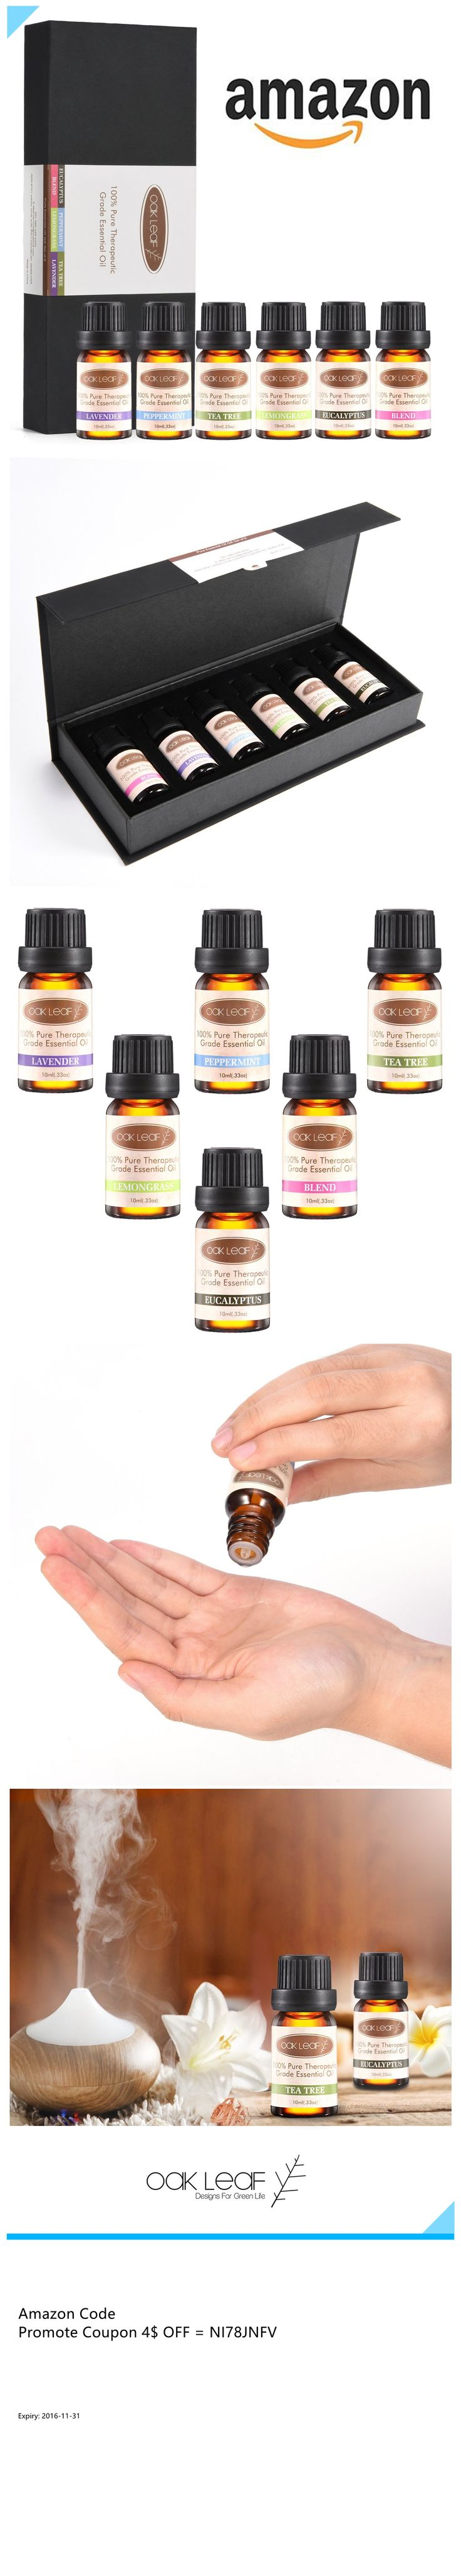 $5.99 Set of 6 Essential Oils, Oak Leaf 100% Pure Therapeutic Grade Aromatherapy Scented Oil ▶▶ Thanks for this Amazon Code: NI78JNFV Just Save me 4$ off ! Get it Now !!!